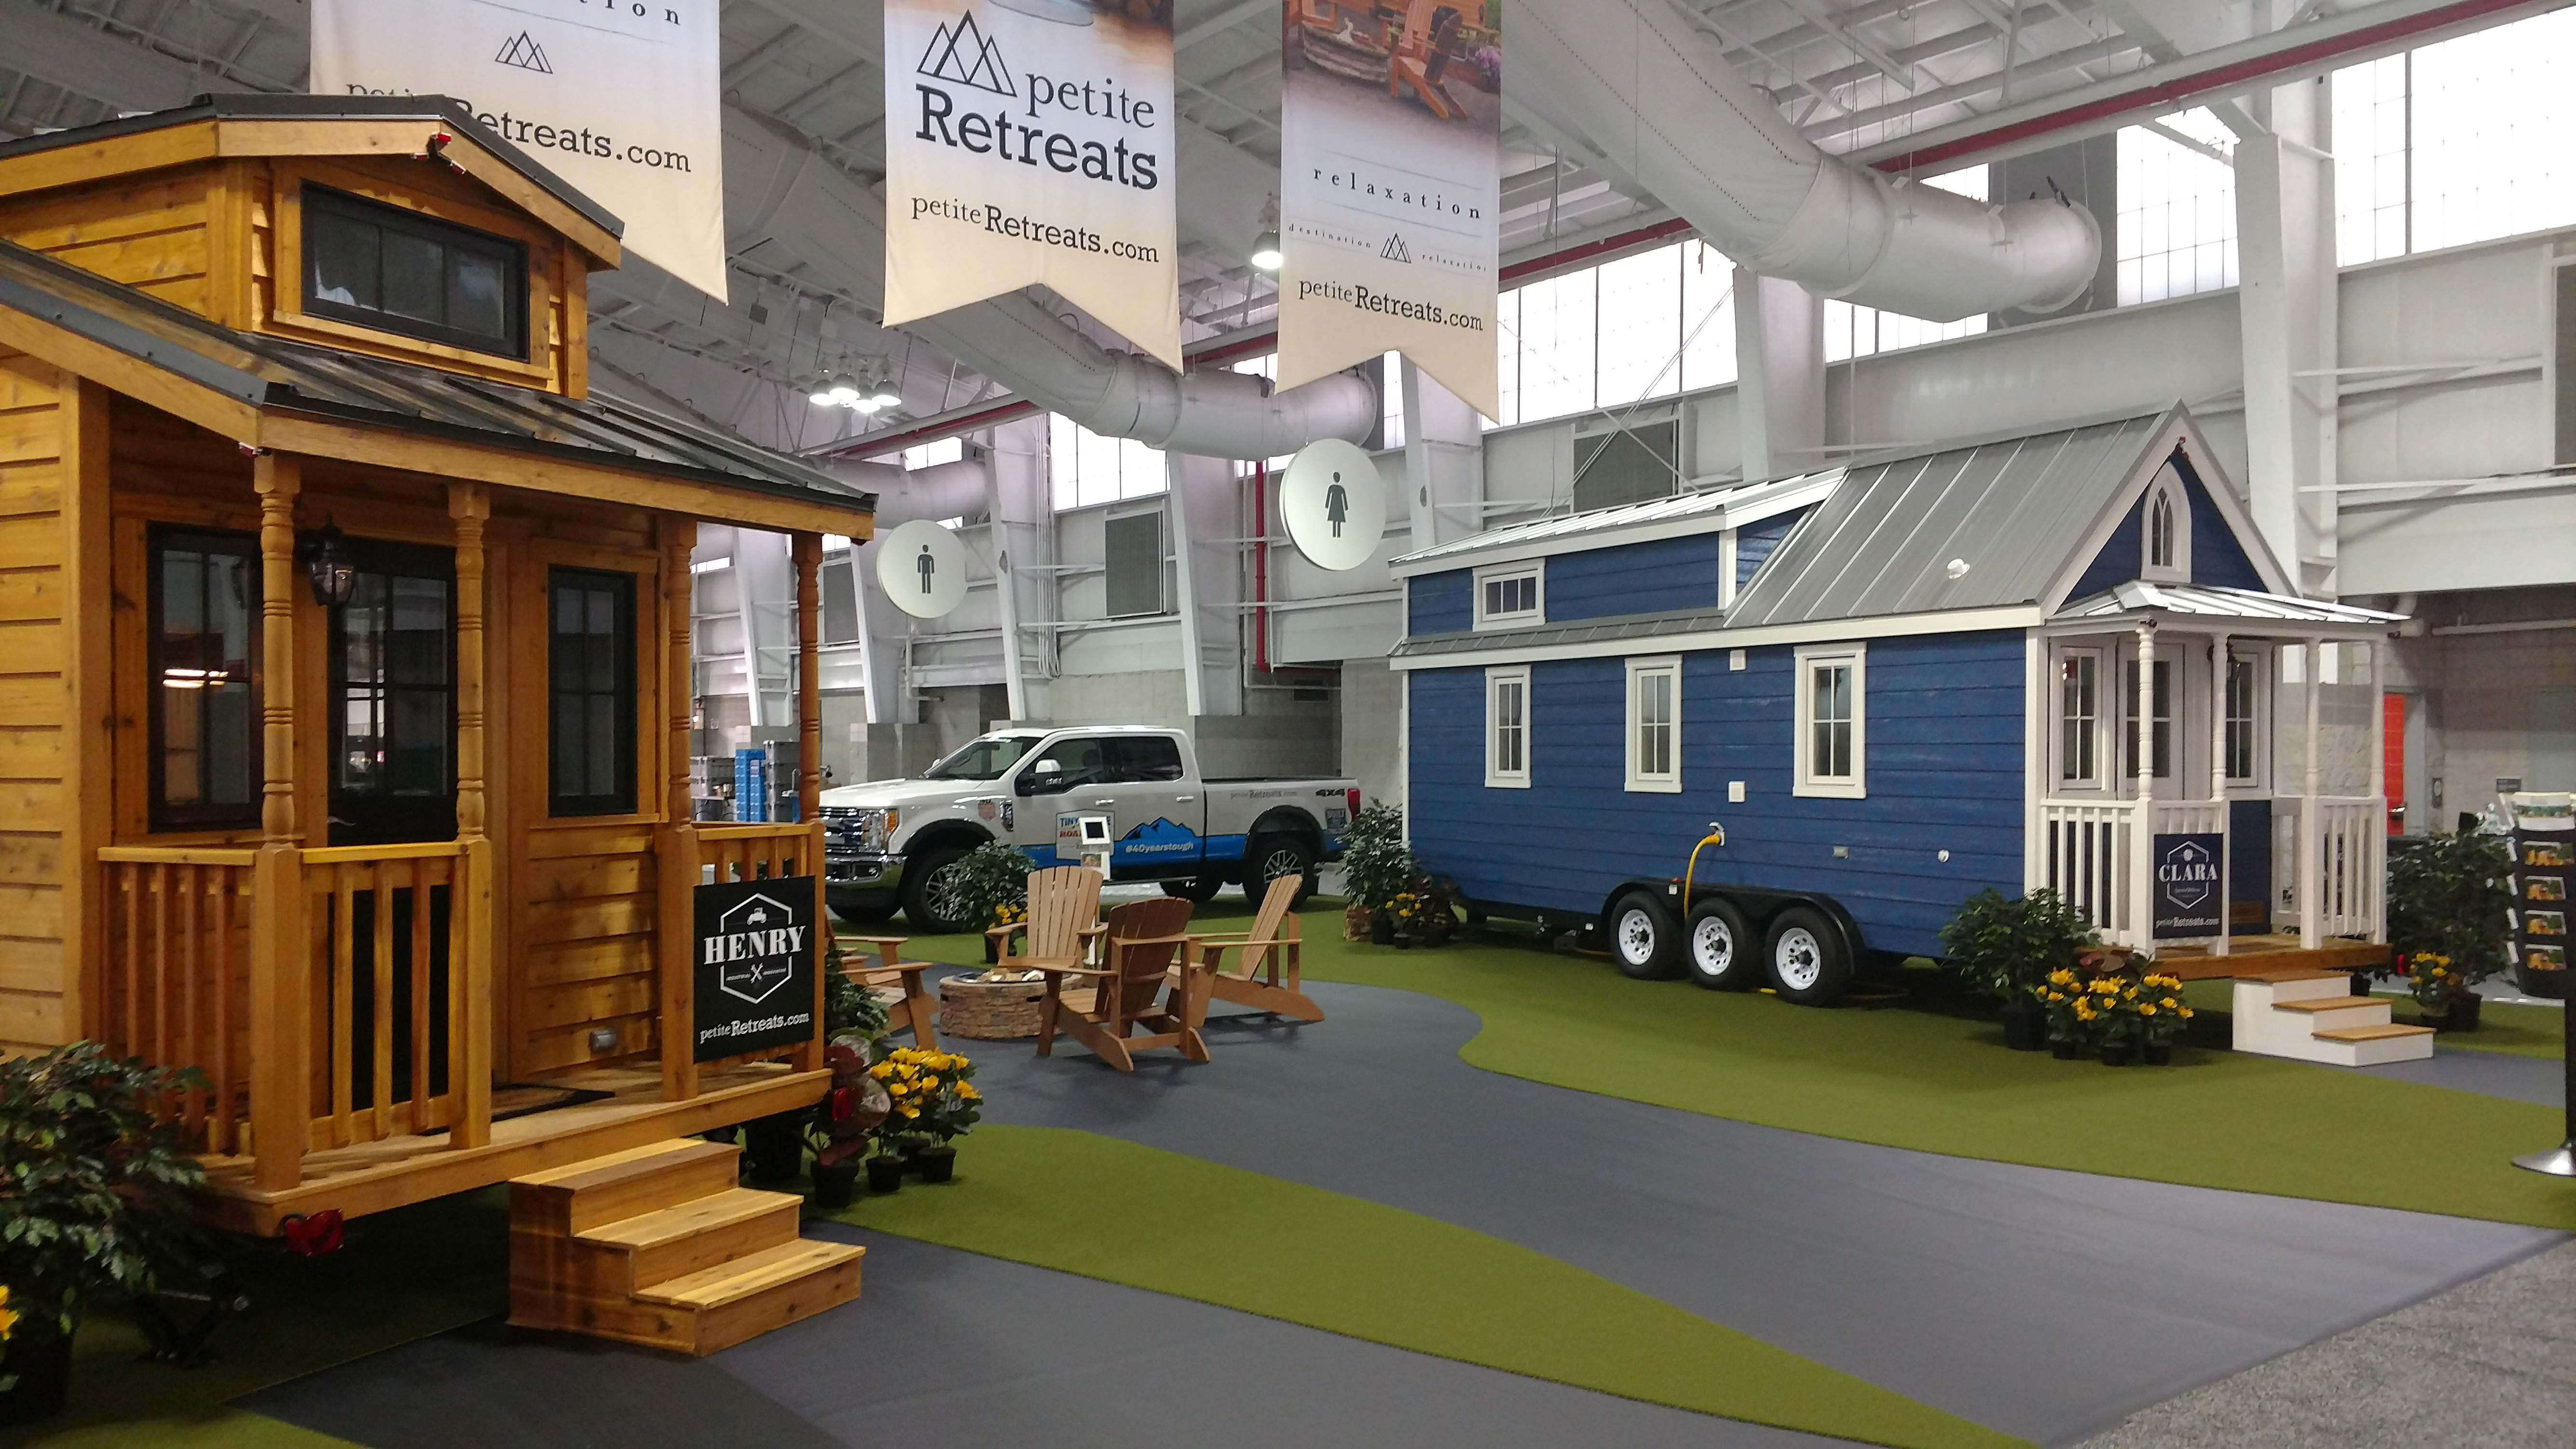 easy tiny homes. Ford reports that towing the tiny houses will be easy thanks to features  like Trailer Reverse Guidance and an exclusive 360 degree camera system with across U S this summer Medium Duty